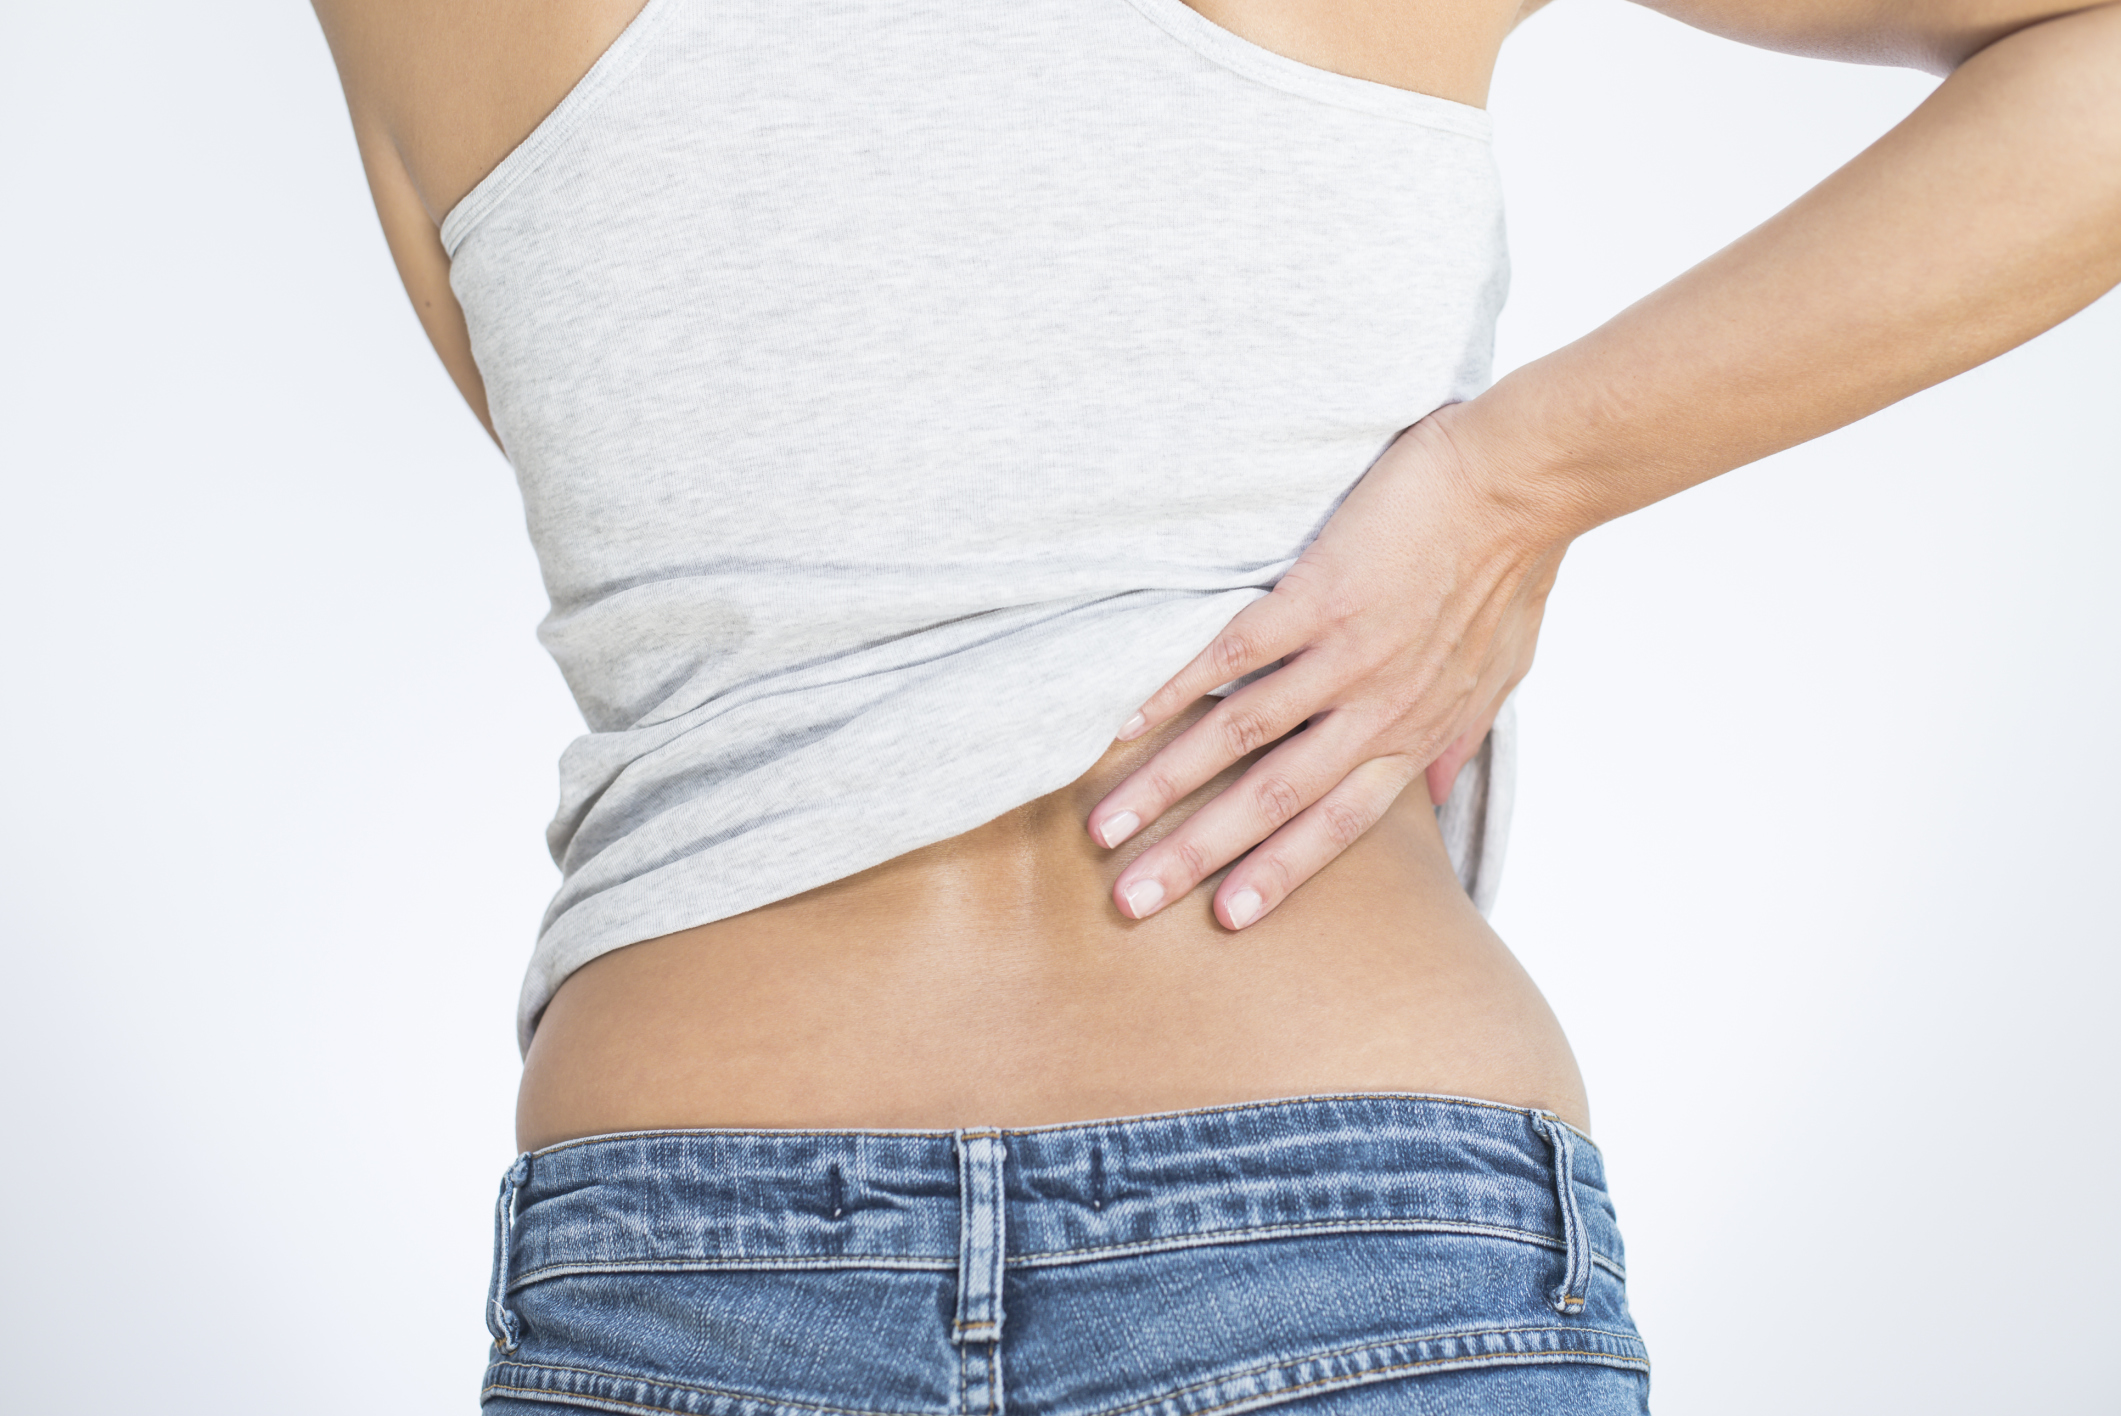 Swollen Kidney Hydronephrosis Causes Symptoms And Treatment